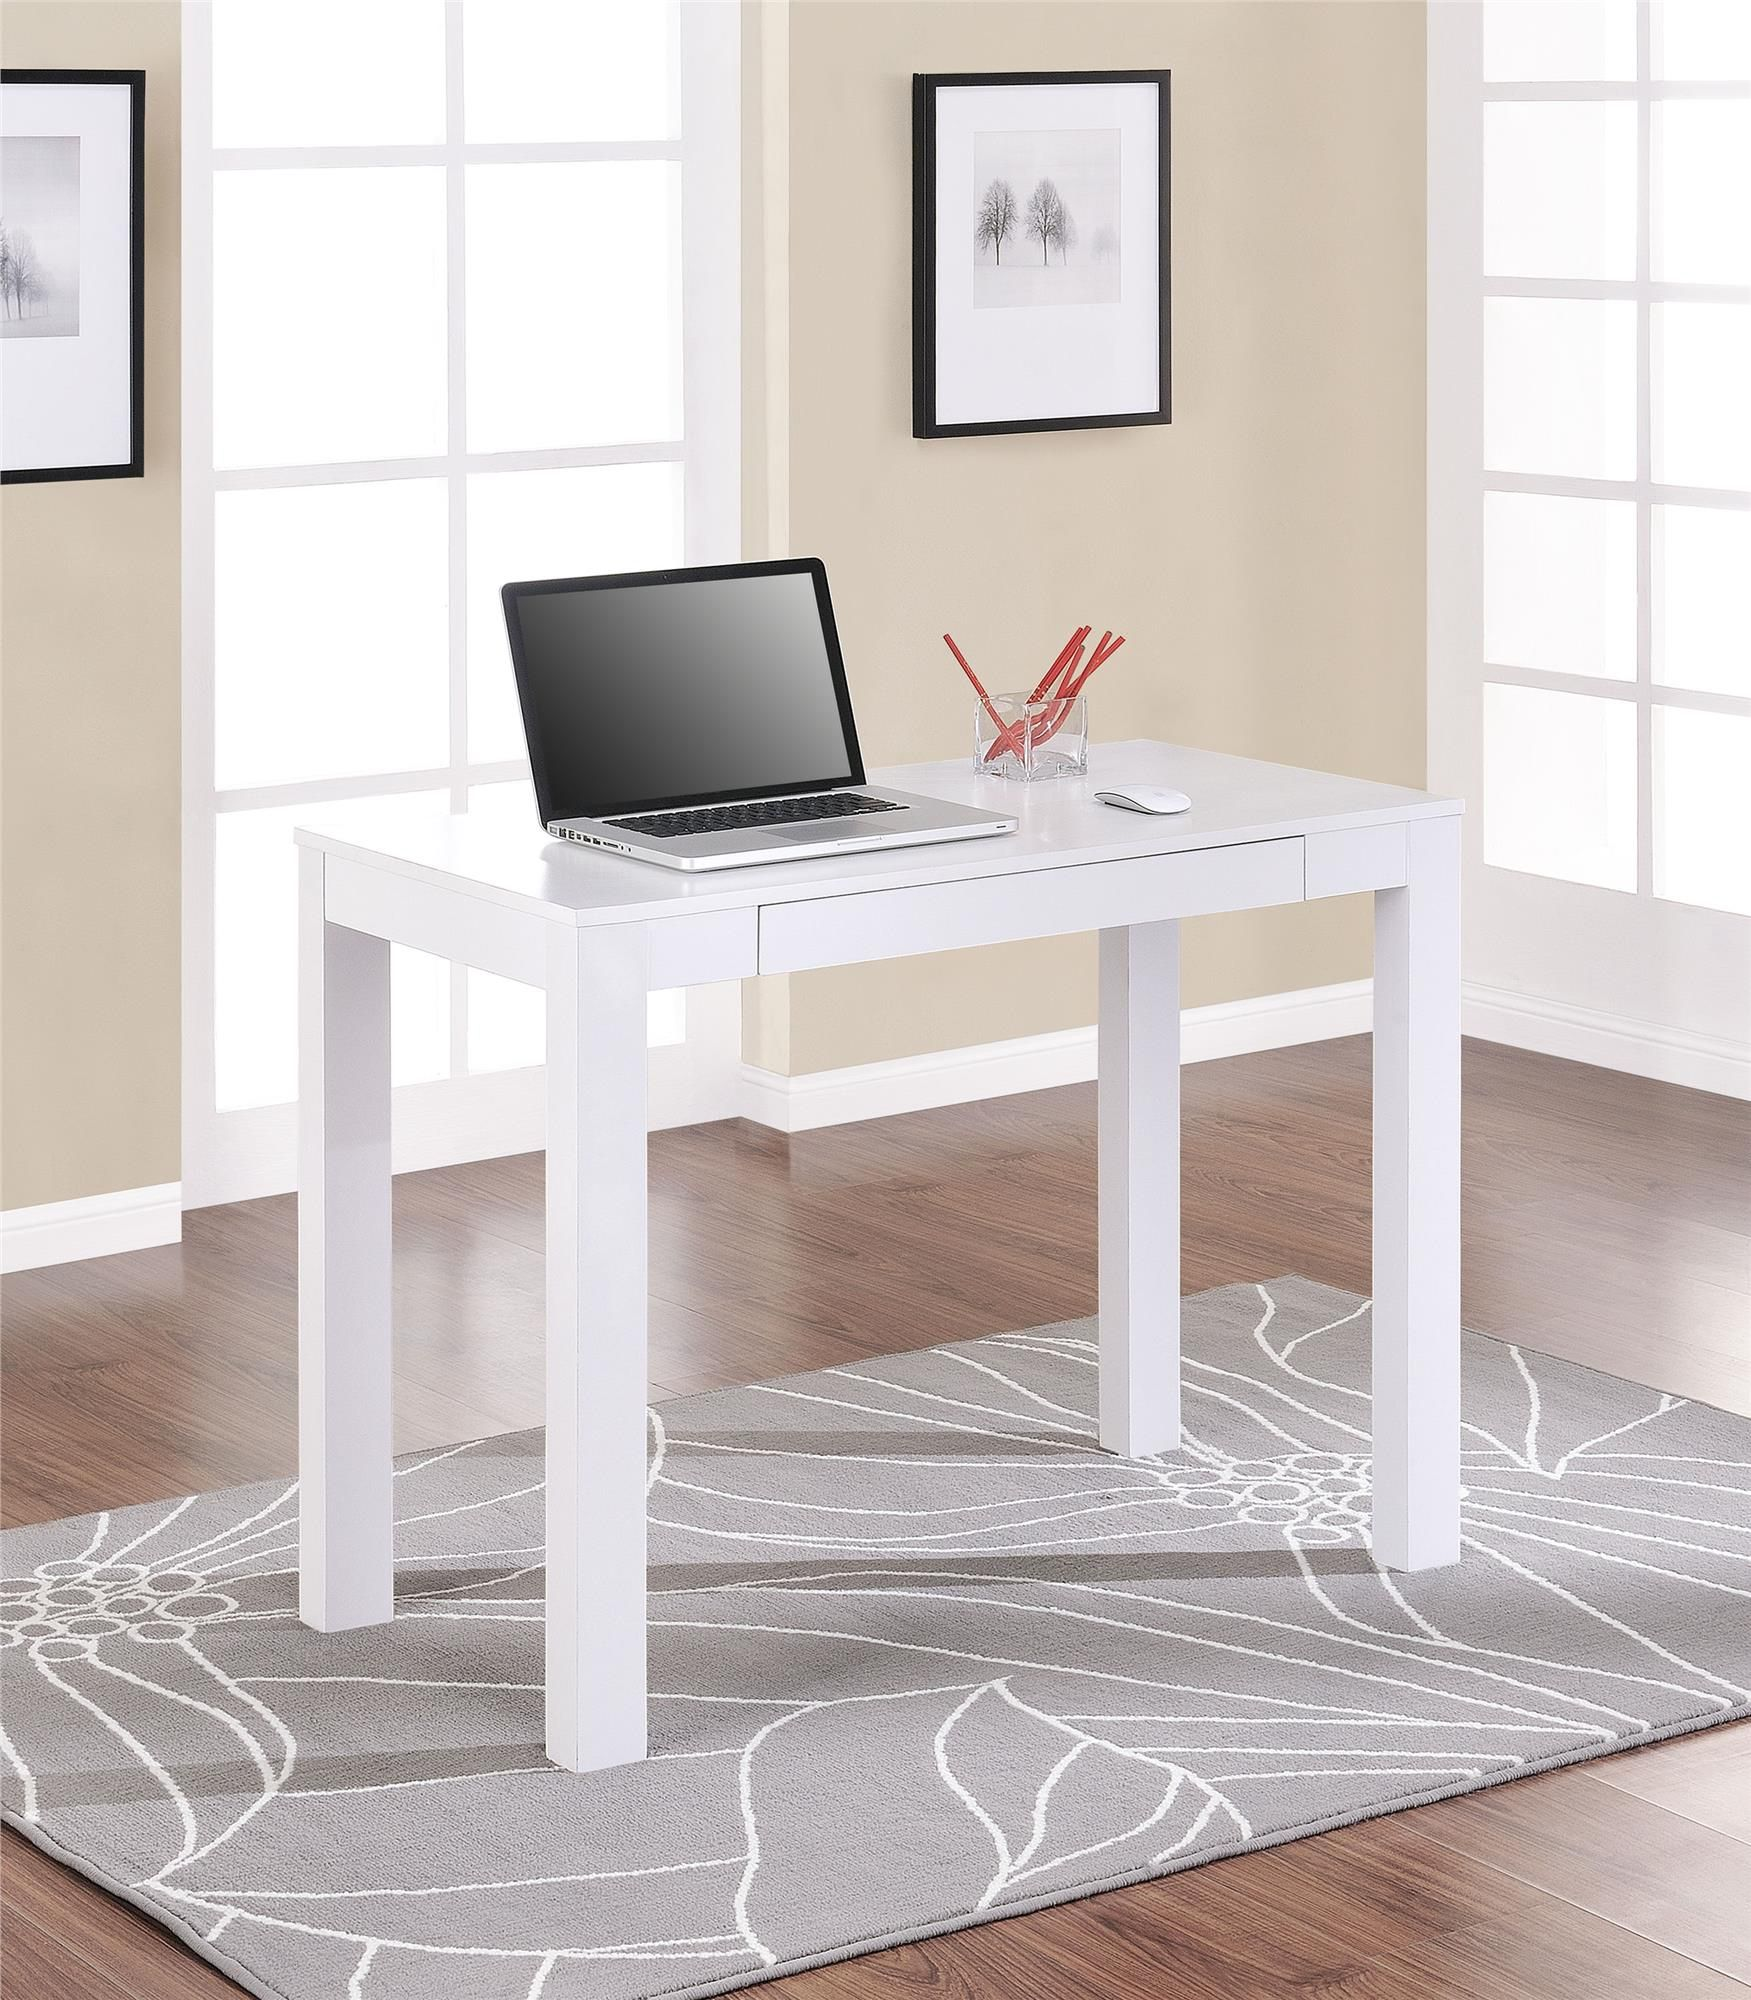 Small Parsons Table Desk Best Office Desk Chair Check more at